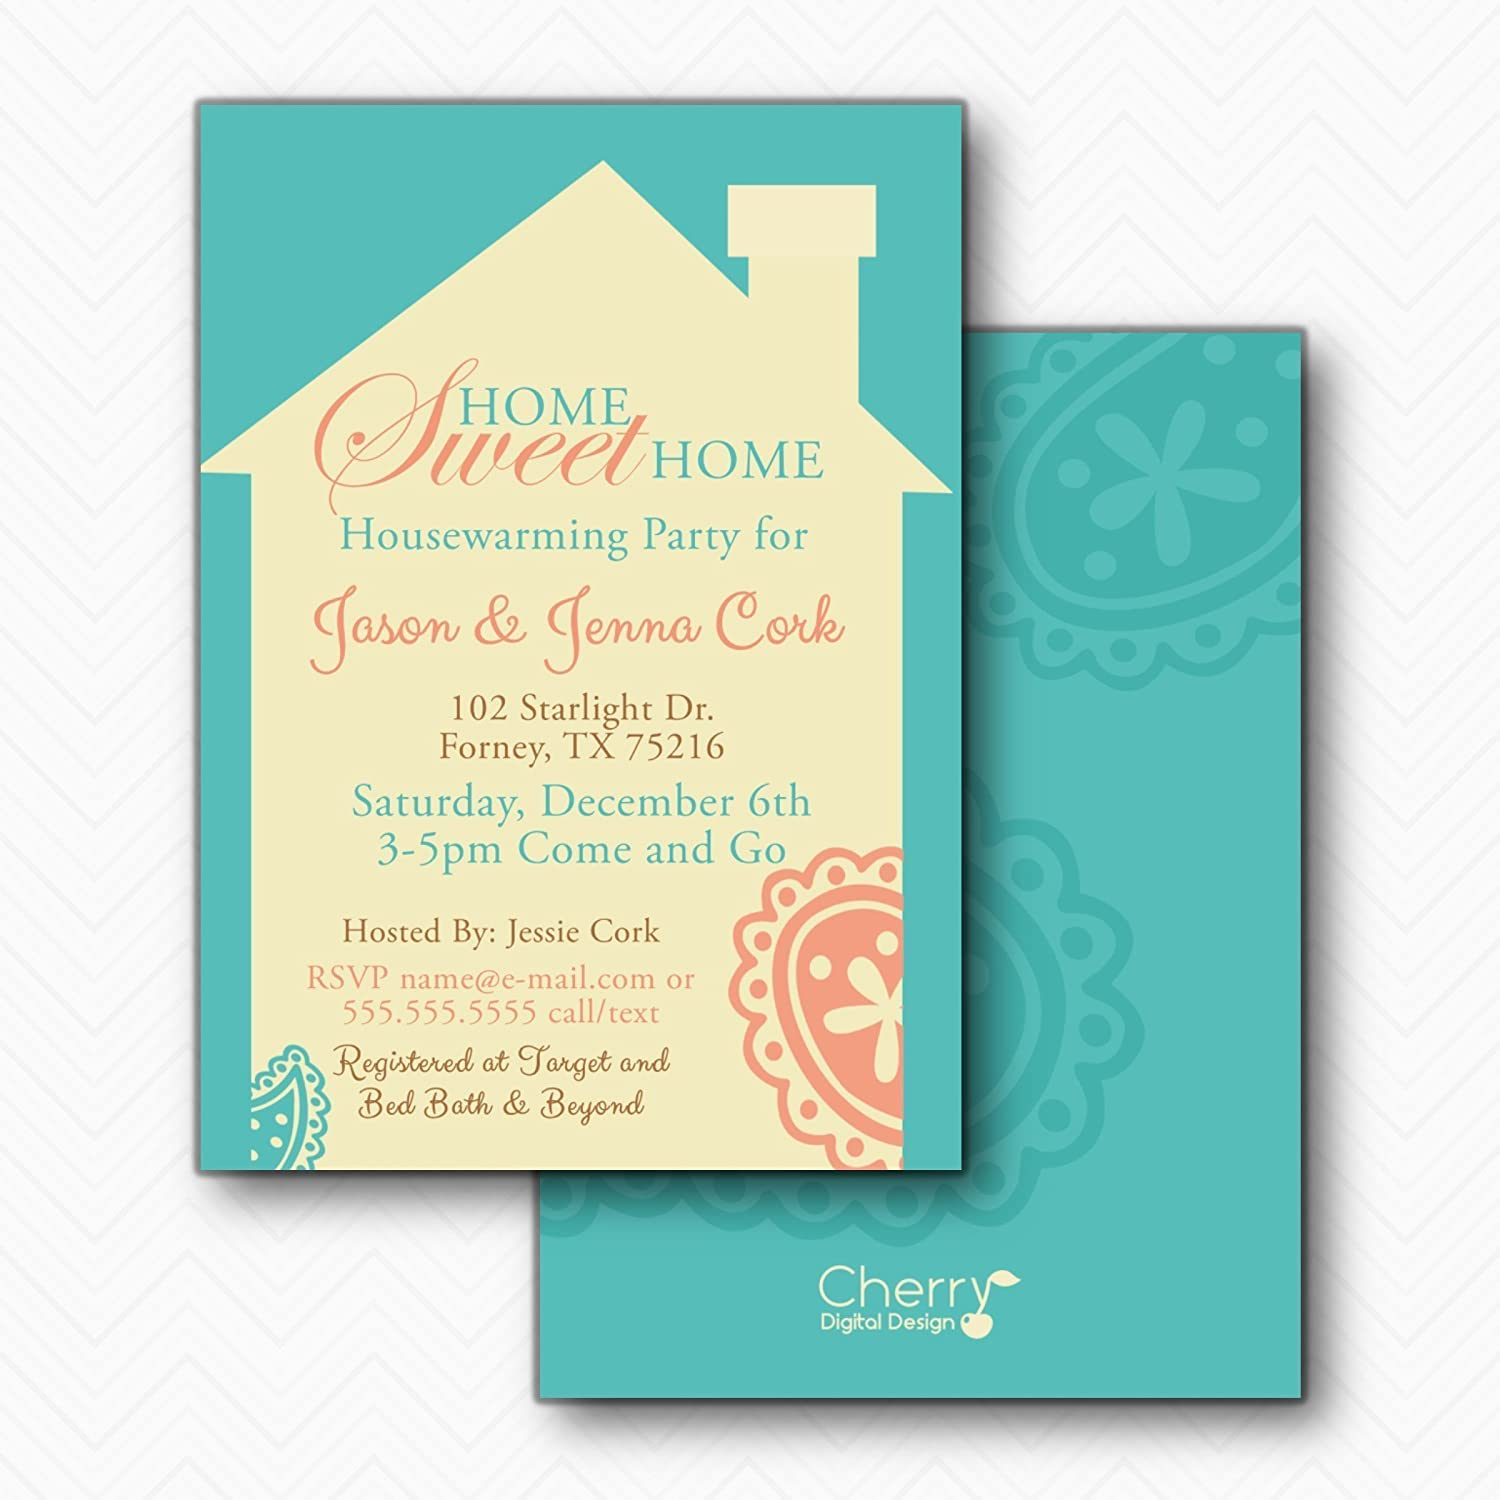 Perfect invitations housewarming party collection invitations amazon home sweet home paisley housewarming party invitations stopboris Images